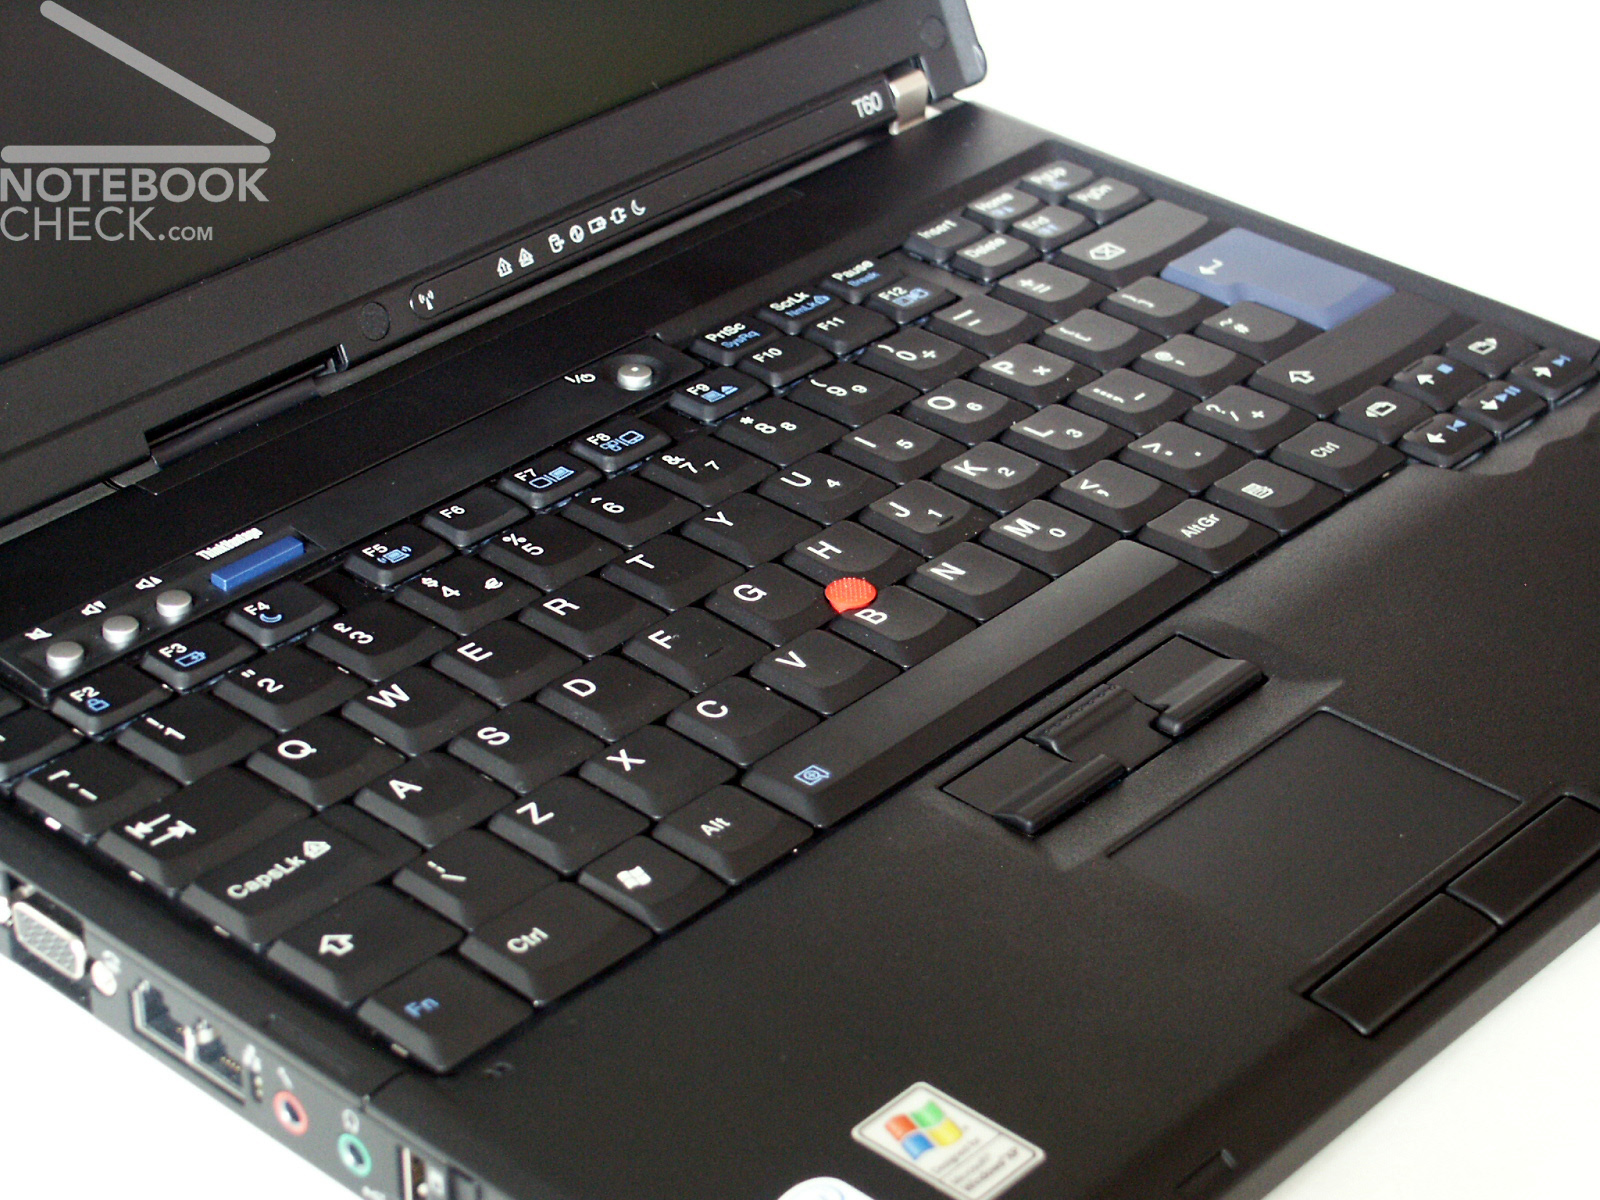 LENOVO T60P SOUND WINDOWS 8.1 DRIVERS DOWNLOAD